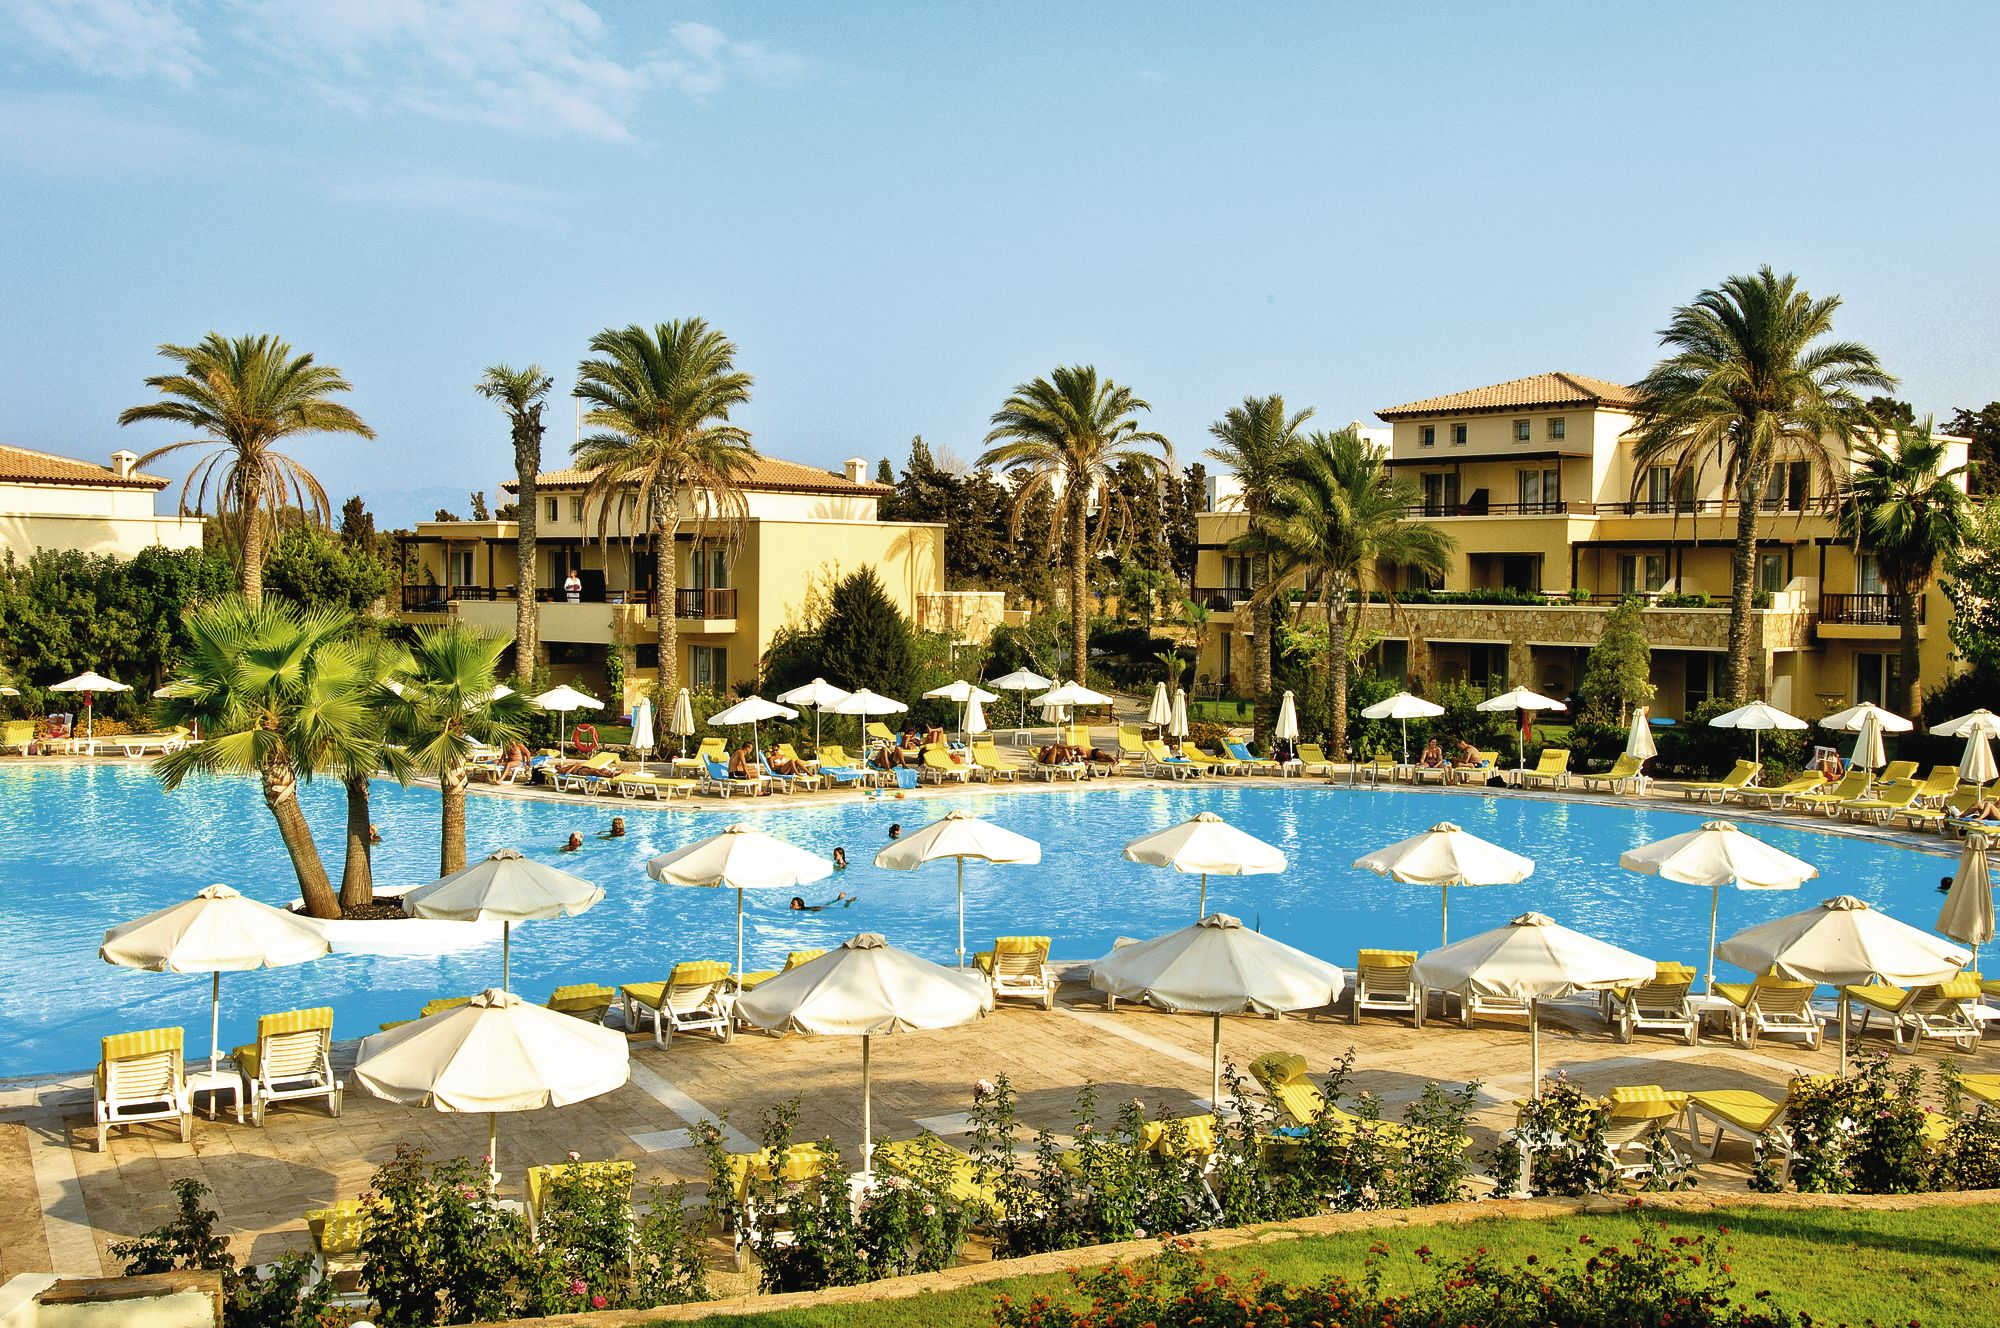 Holiday to Grecotel Kos Imperial Thalasso in PSALIDI (GREECE) for 3 nights (HB) departing from manchester on 28 Sep